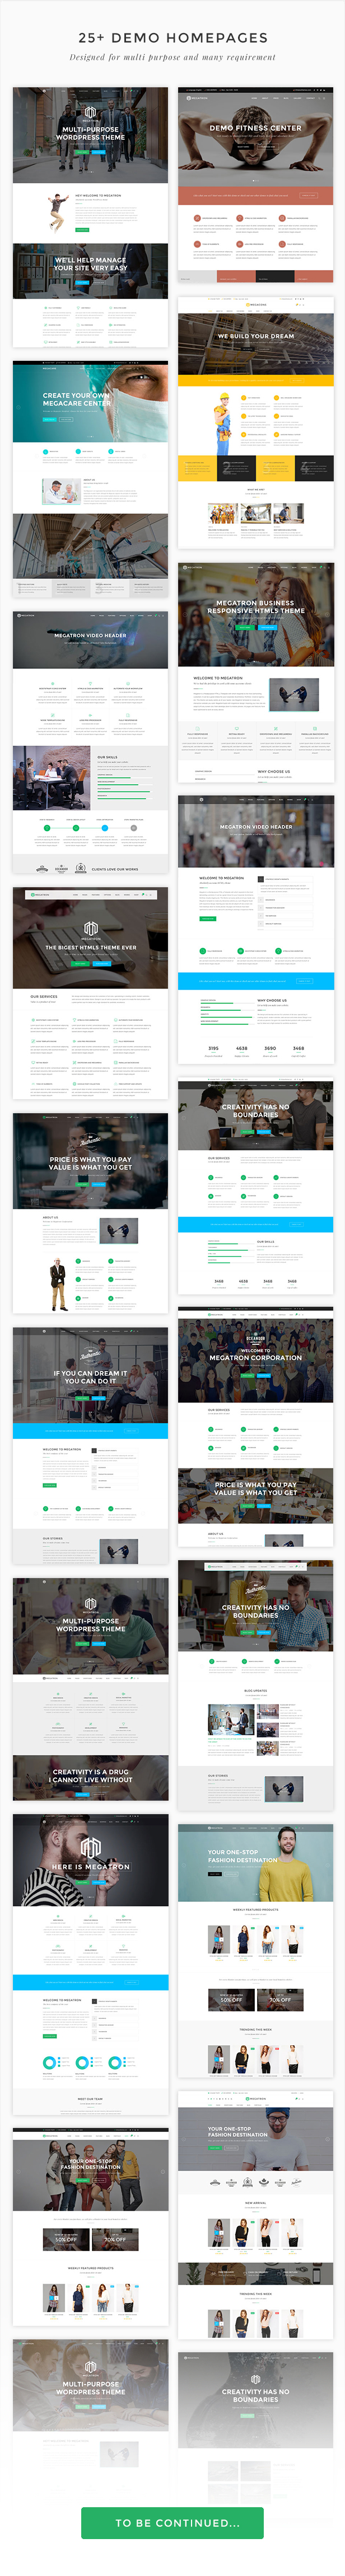 Megatron - Responsive MultiPurpose WordPress Theme - 12